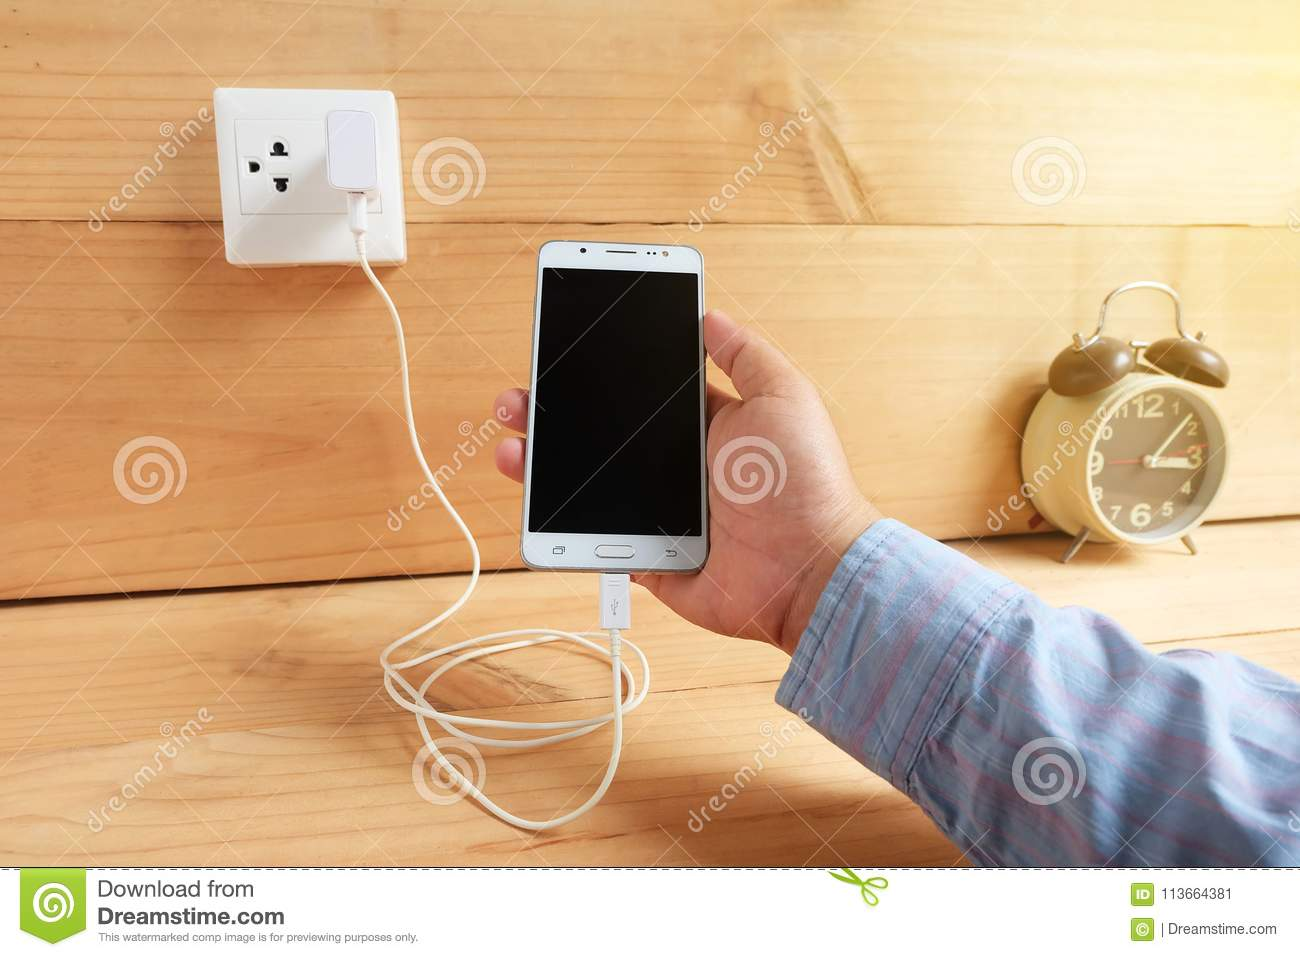 Mobile phone and charging